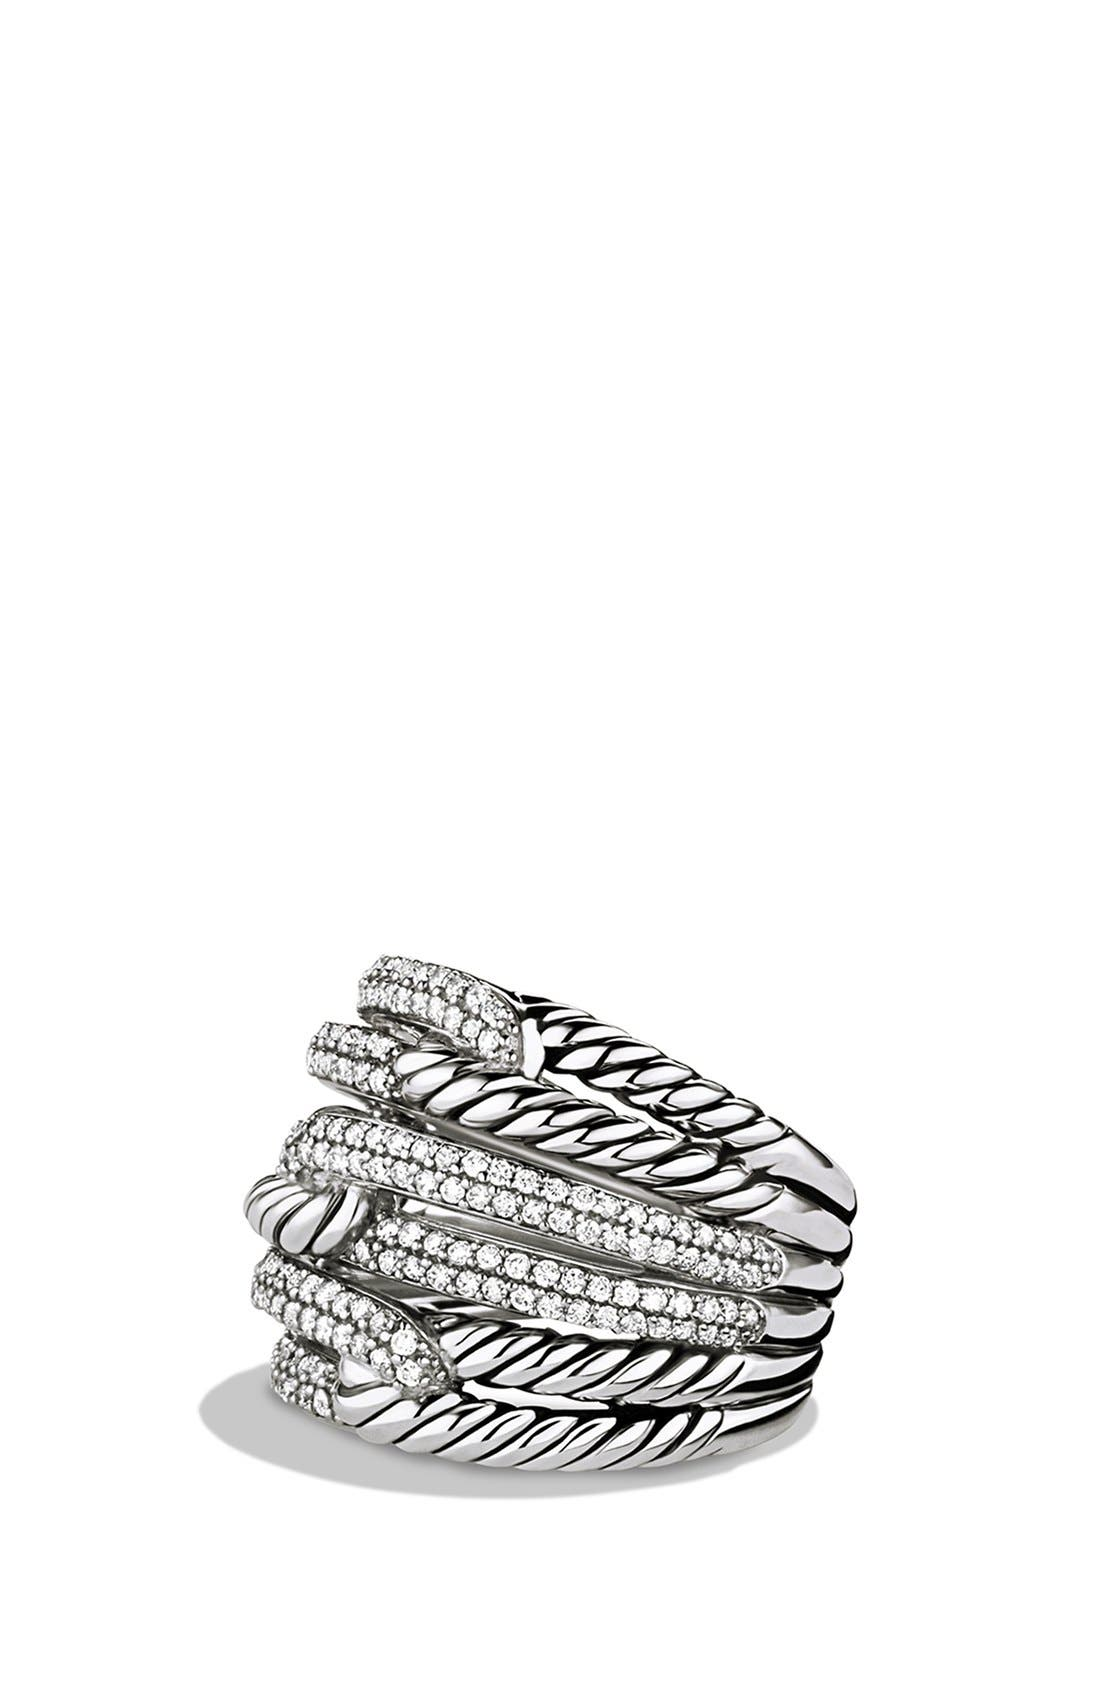 'Labyrinth' Triple-Loop Ring with Diamonds,                         Main,                         color, DIAMOND